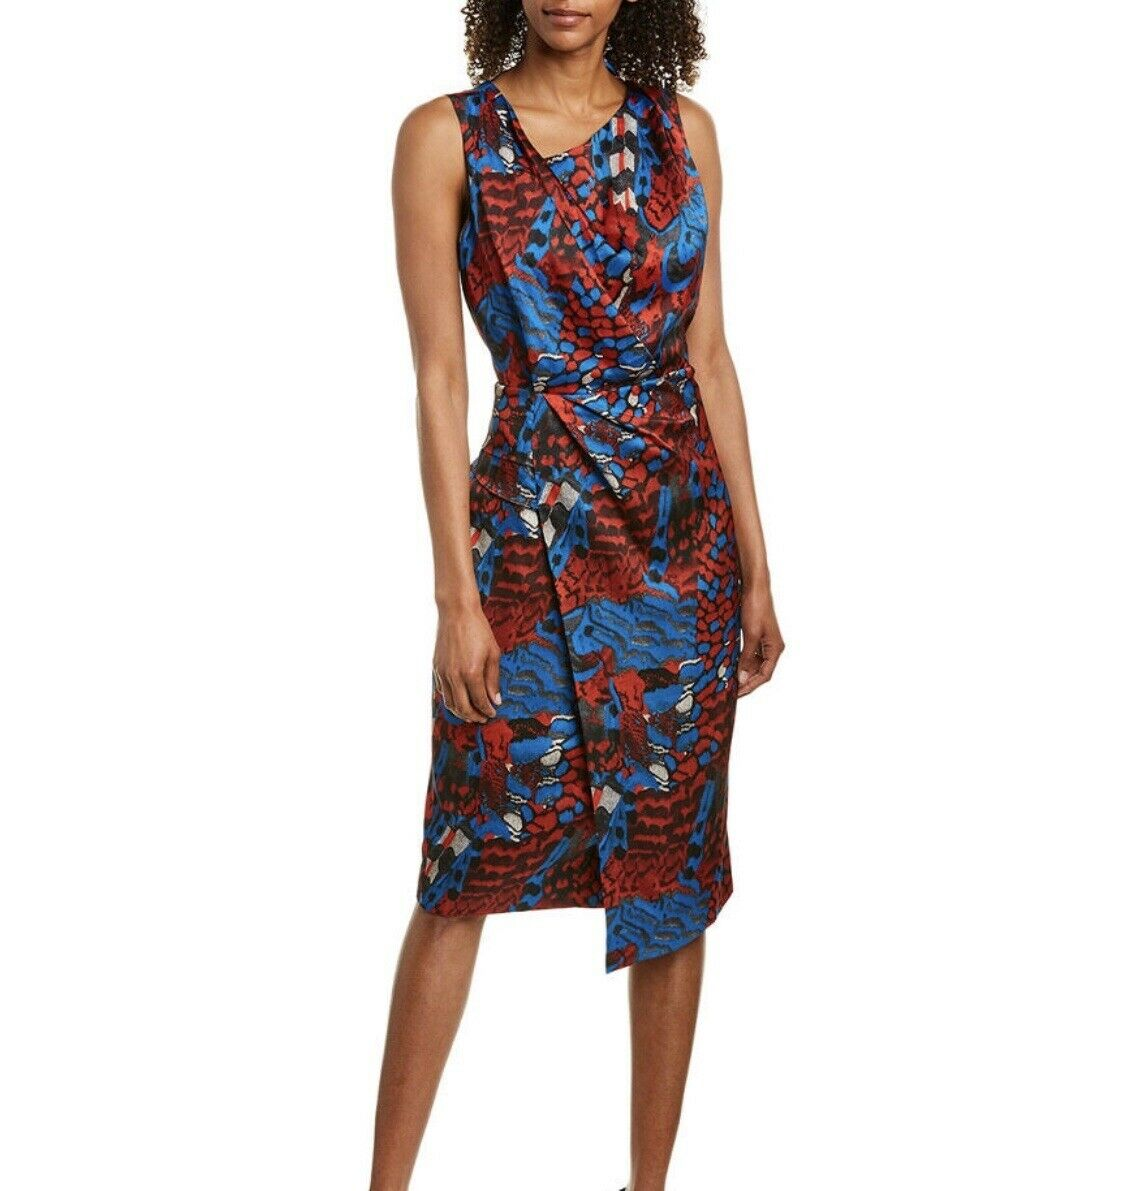 Reiss Diona Feather Print Dress MSRP  370 US Size 0